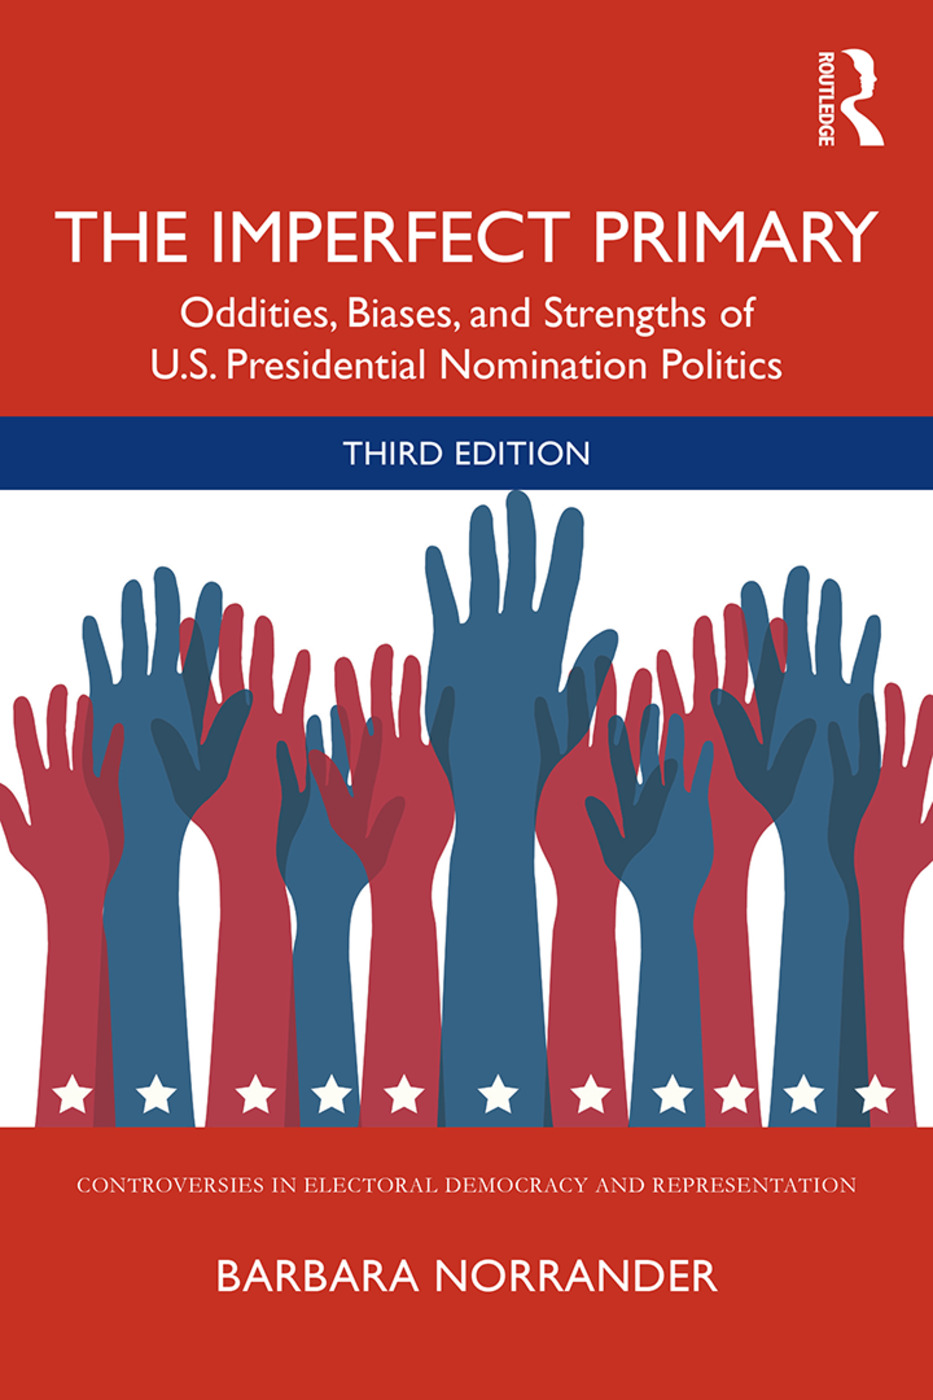 The Imperfect Primary: Oddities, Biases, and Strengths of U.S. Presidential Nomination Politics book cover